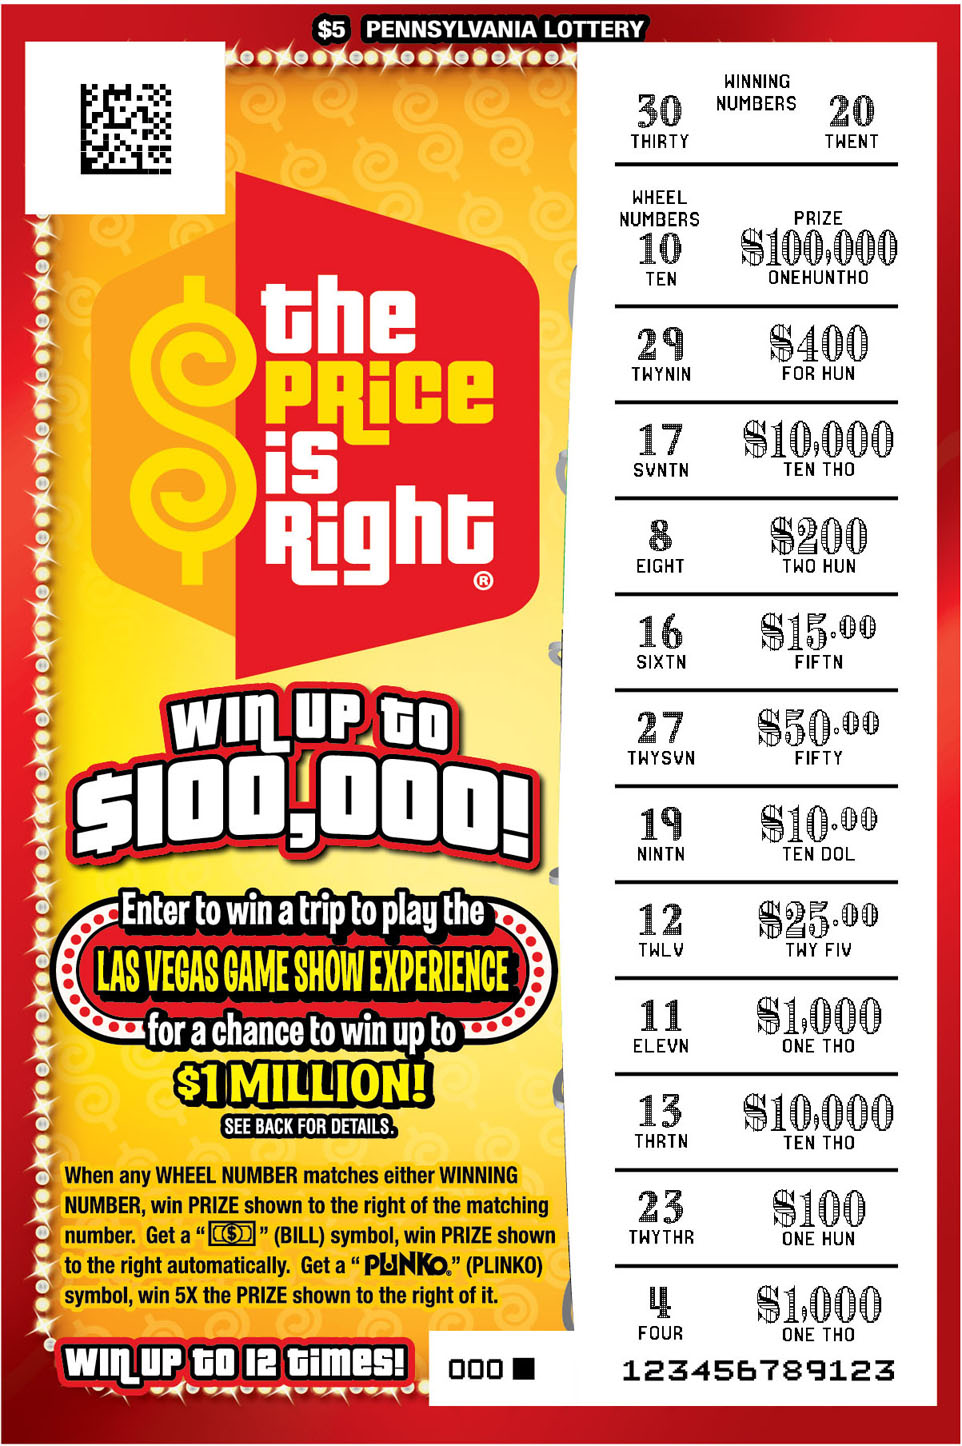 Pennsylvania Lottery - Instant Games - PA Lottery Games